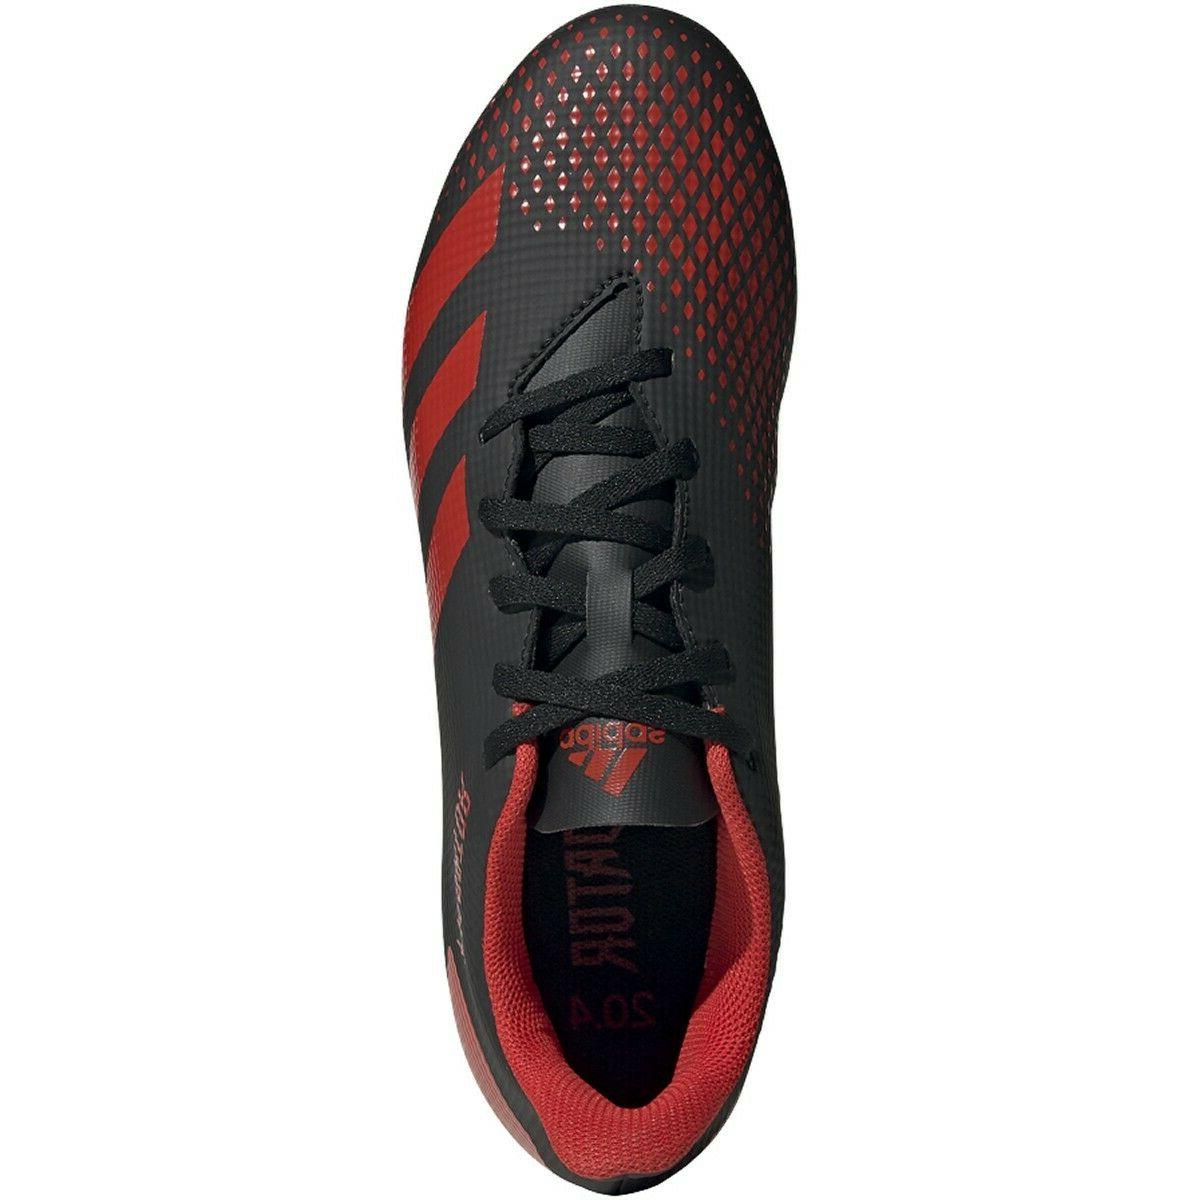 Adidas men's Flexible Ground Cleats Shoes FREE EE9566